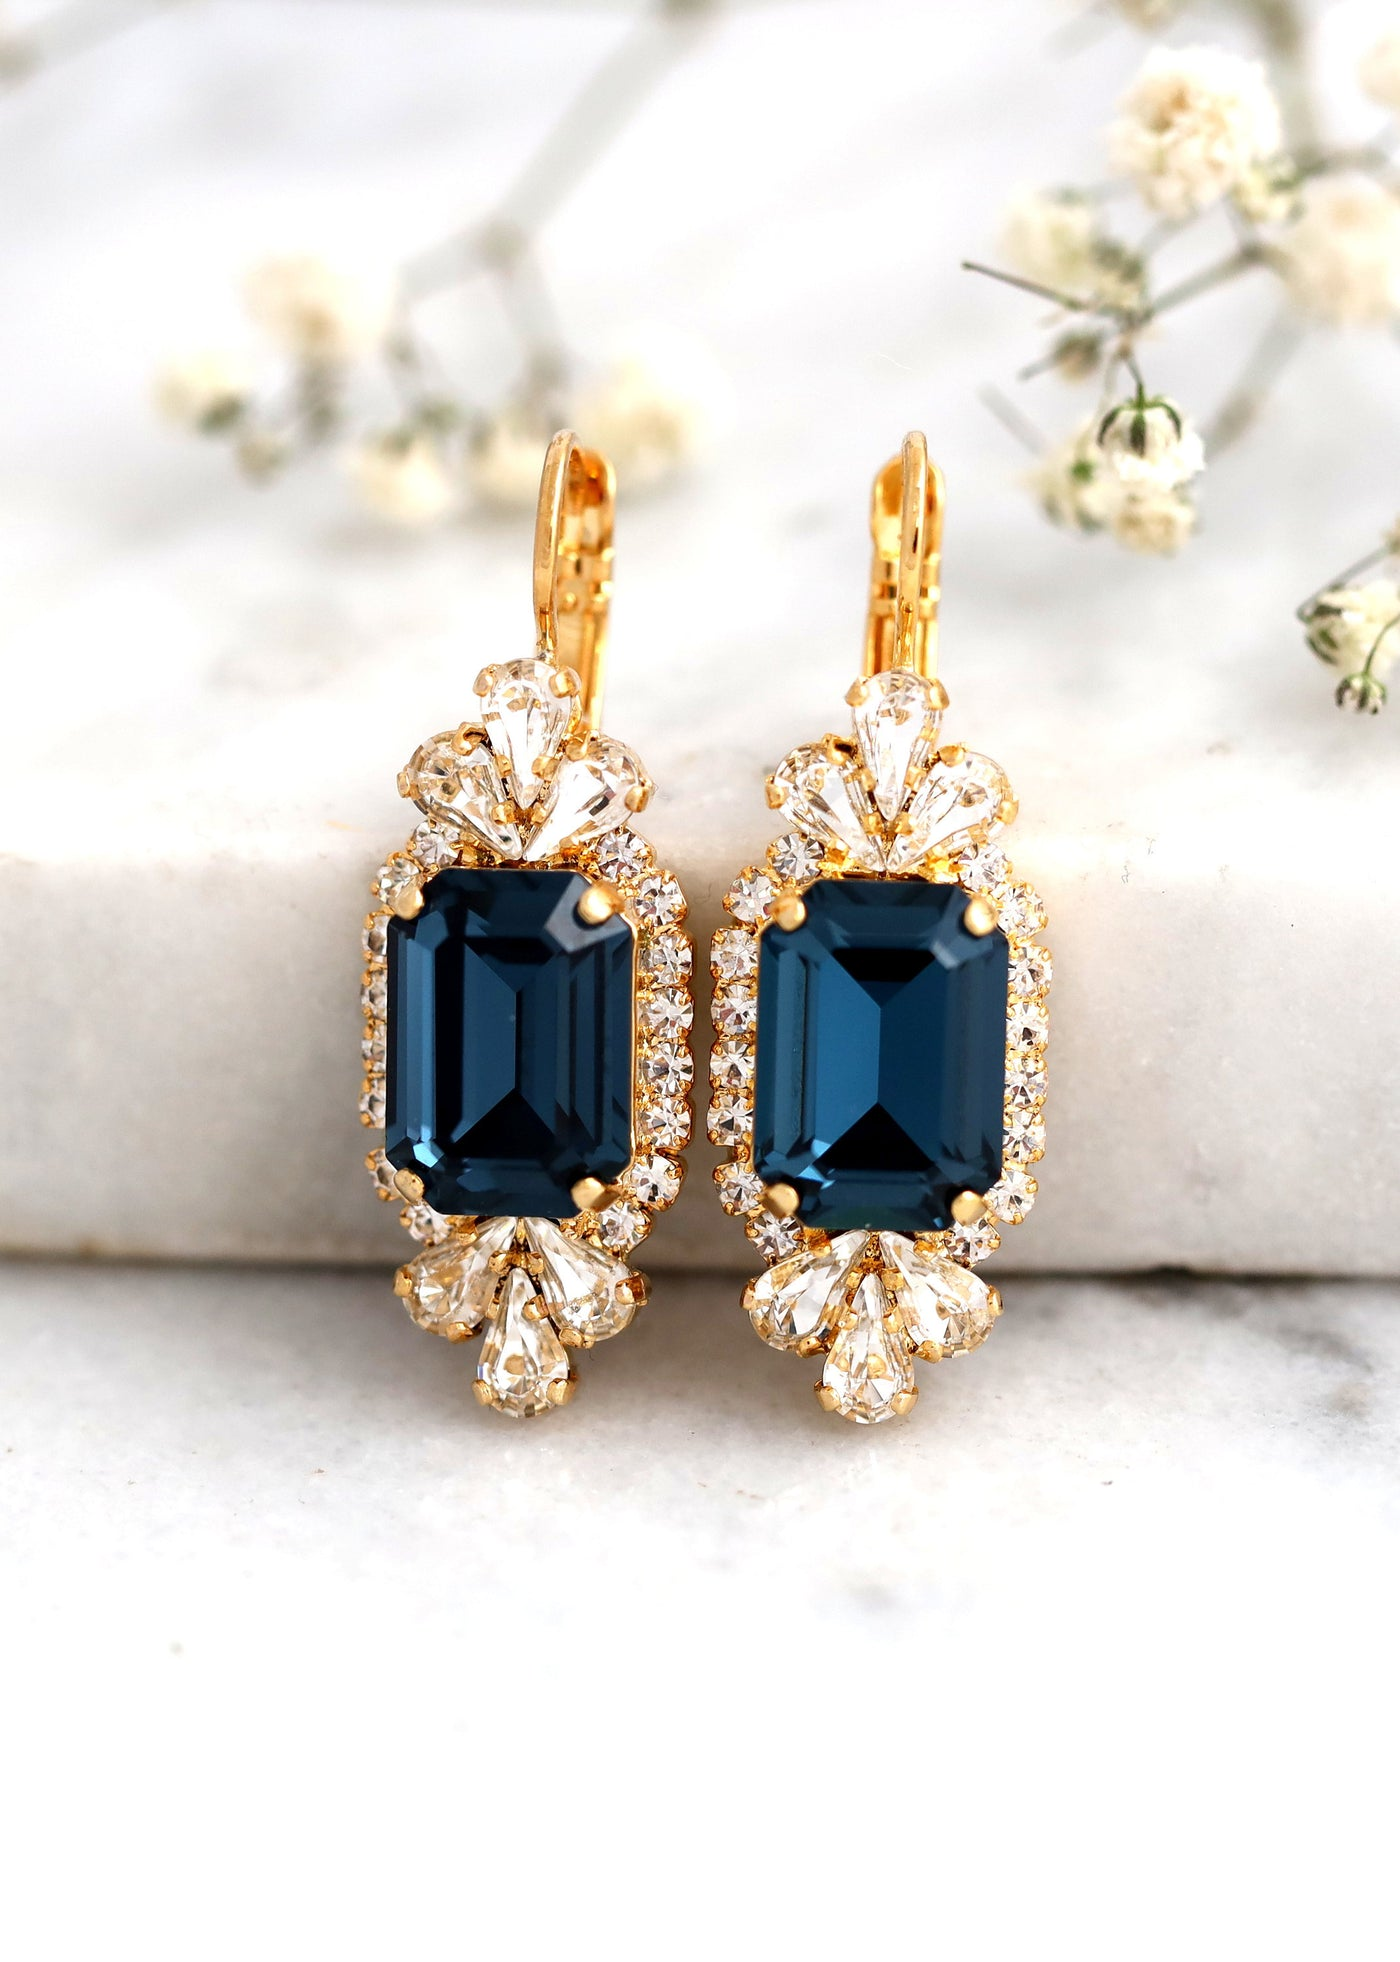 Blue Navy Earrings, Bridal Blue Navy Earrings, Dark Blue Crystal Swarovski Earrings, Bridesmaids Earrings, Emerald Cut Blue Crystal Earrings